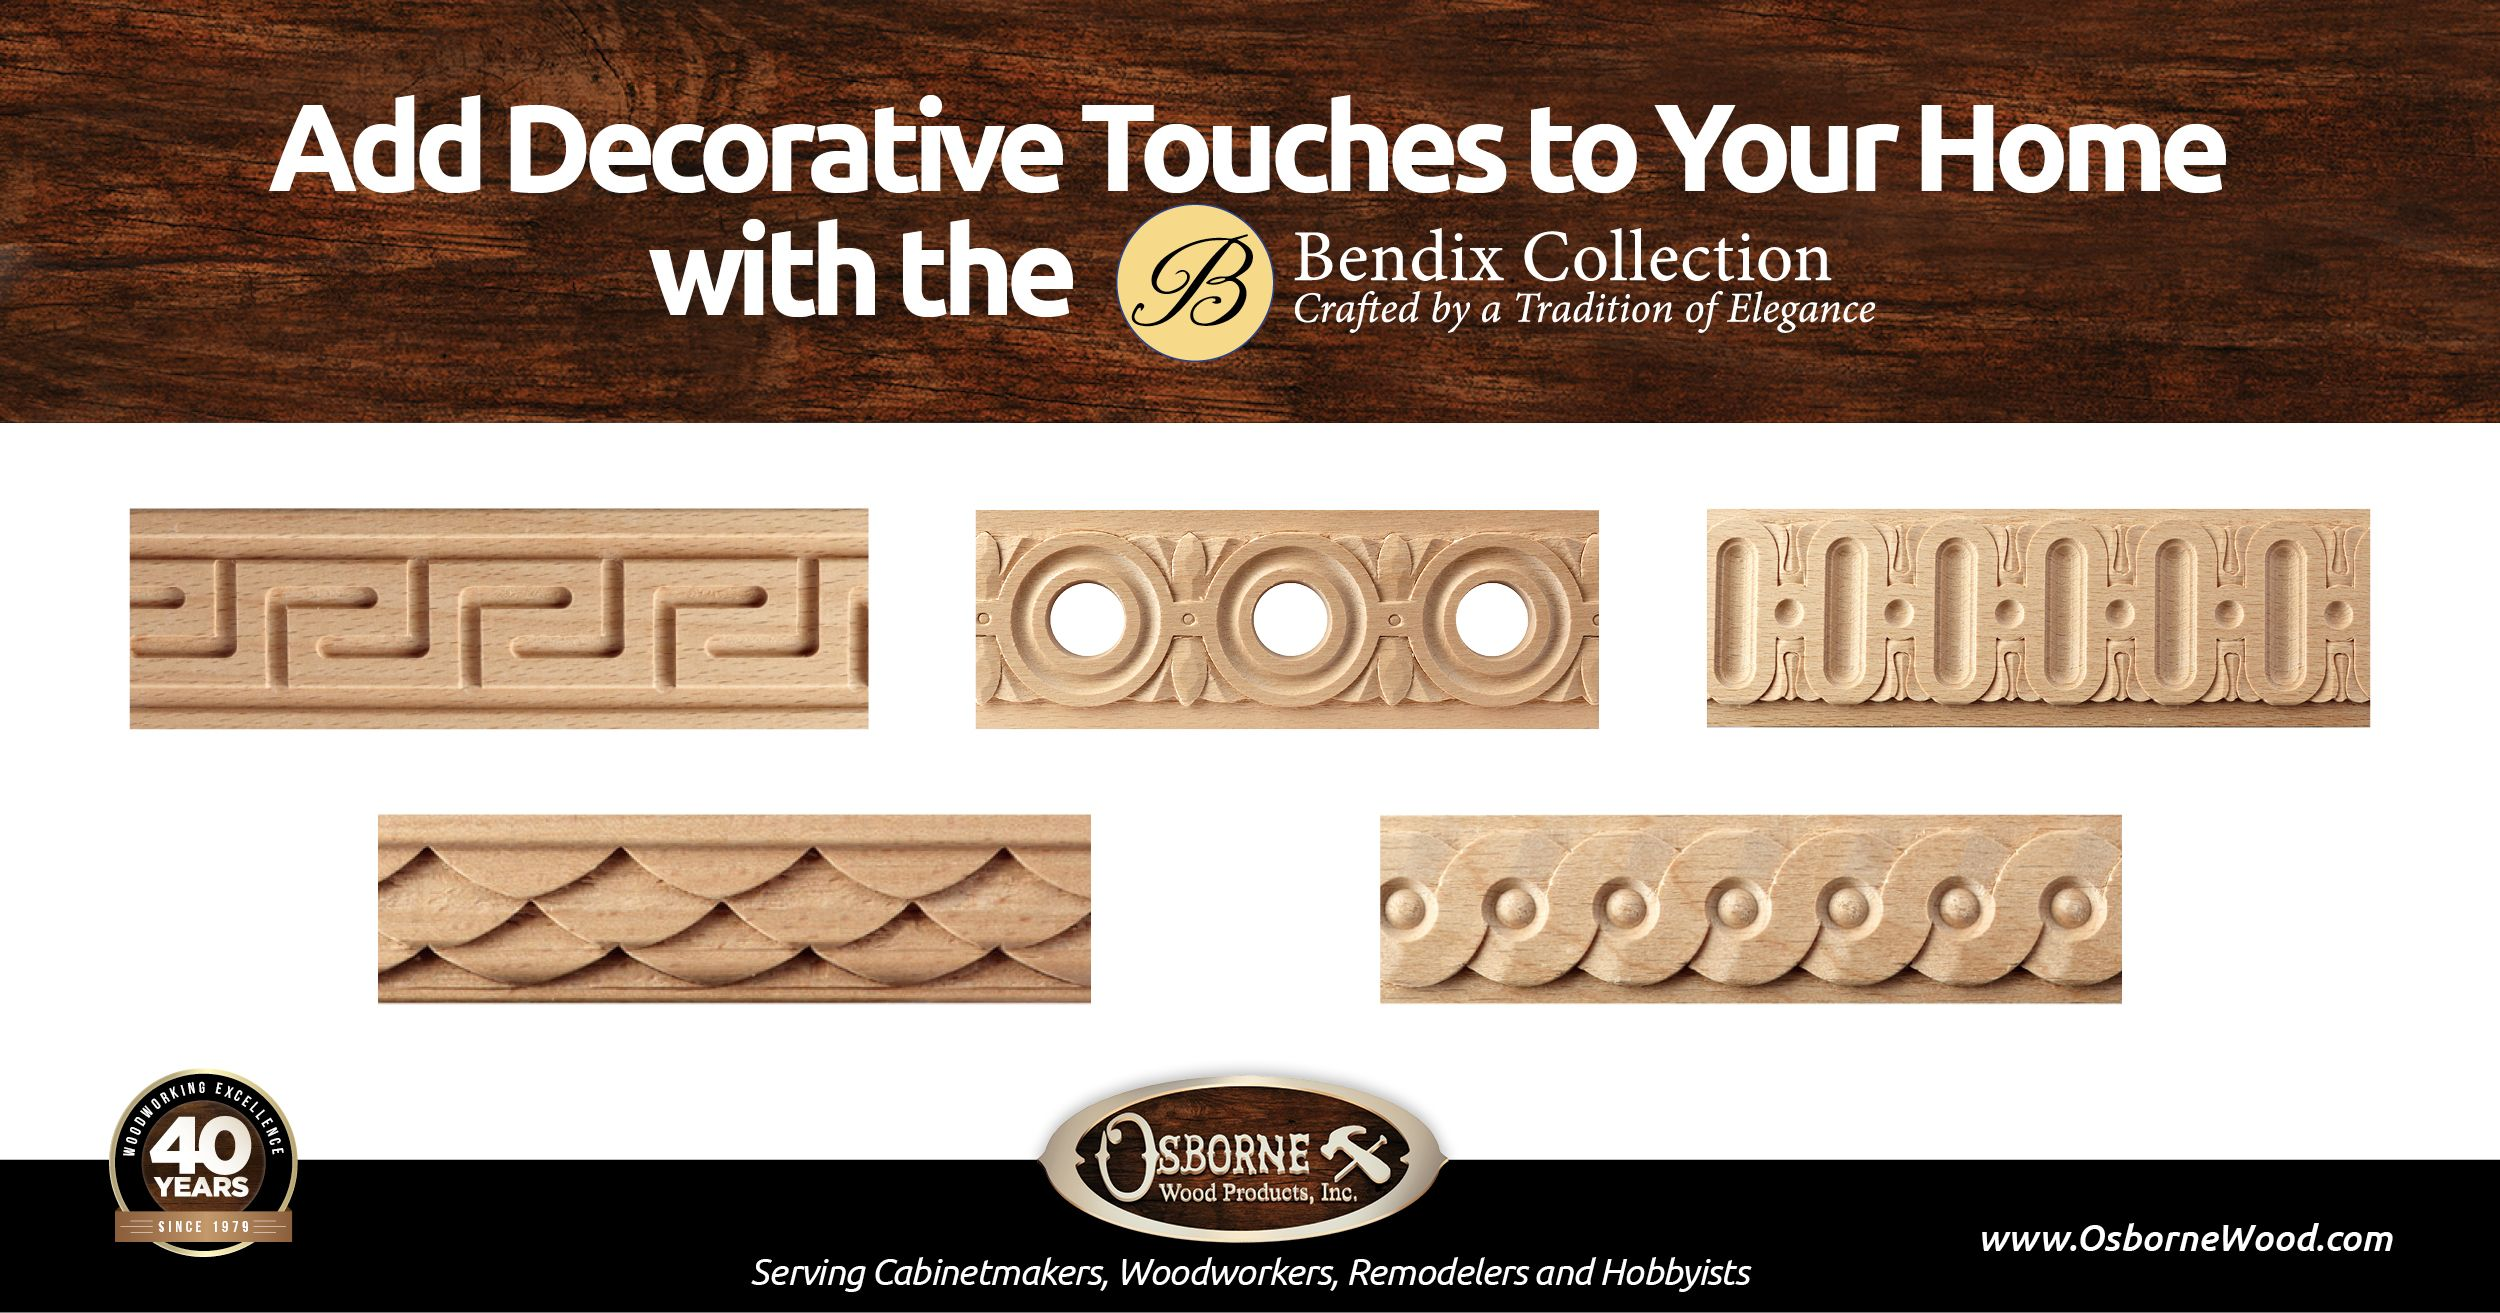 Learn More About Our Bendix Moulding And Trim Collection At Www Osbornewood Com Bendix Moudling And Trim Aspx Moldings And Trim Wood Molding Trim Wood Decor